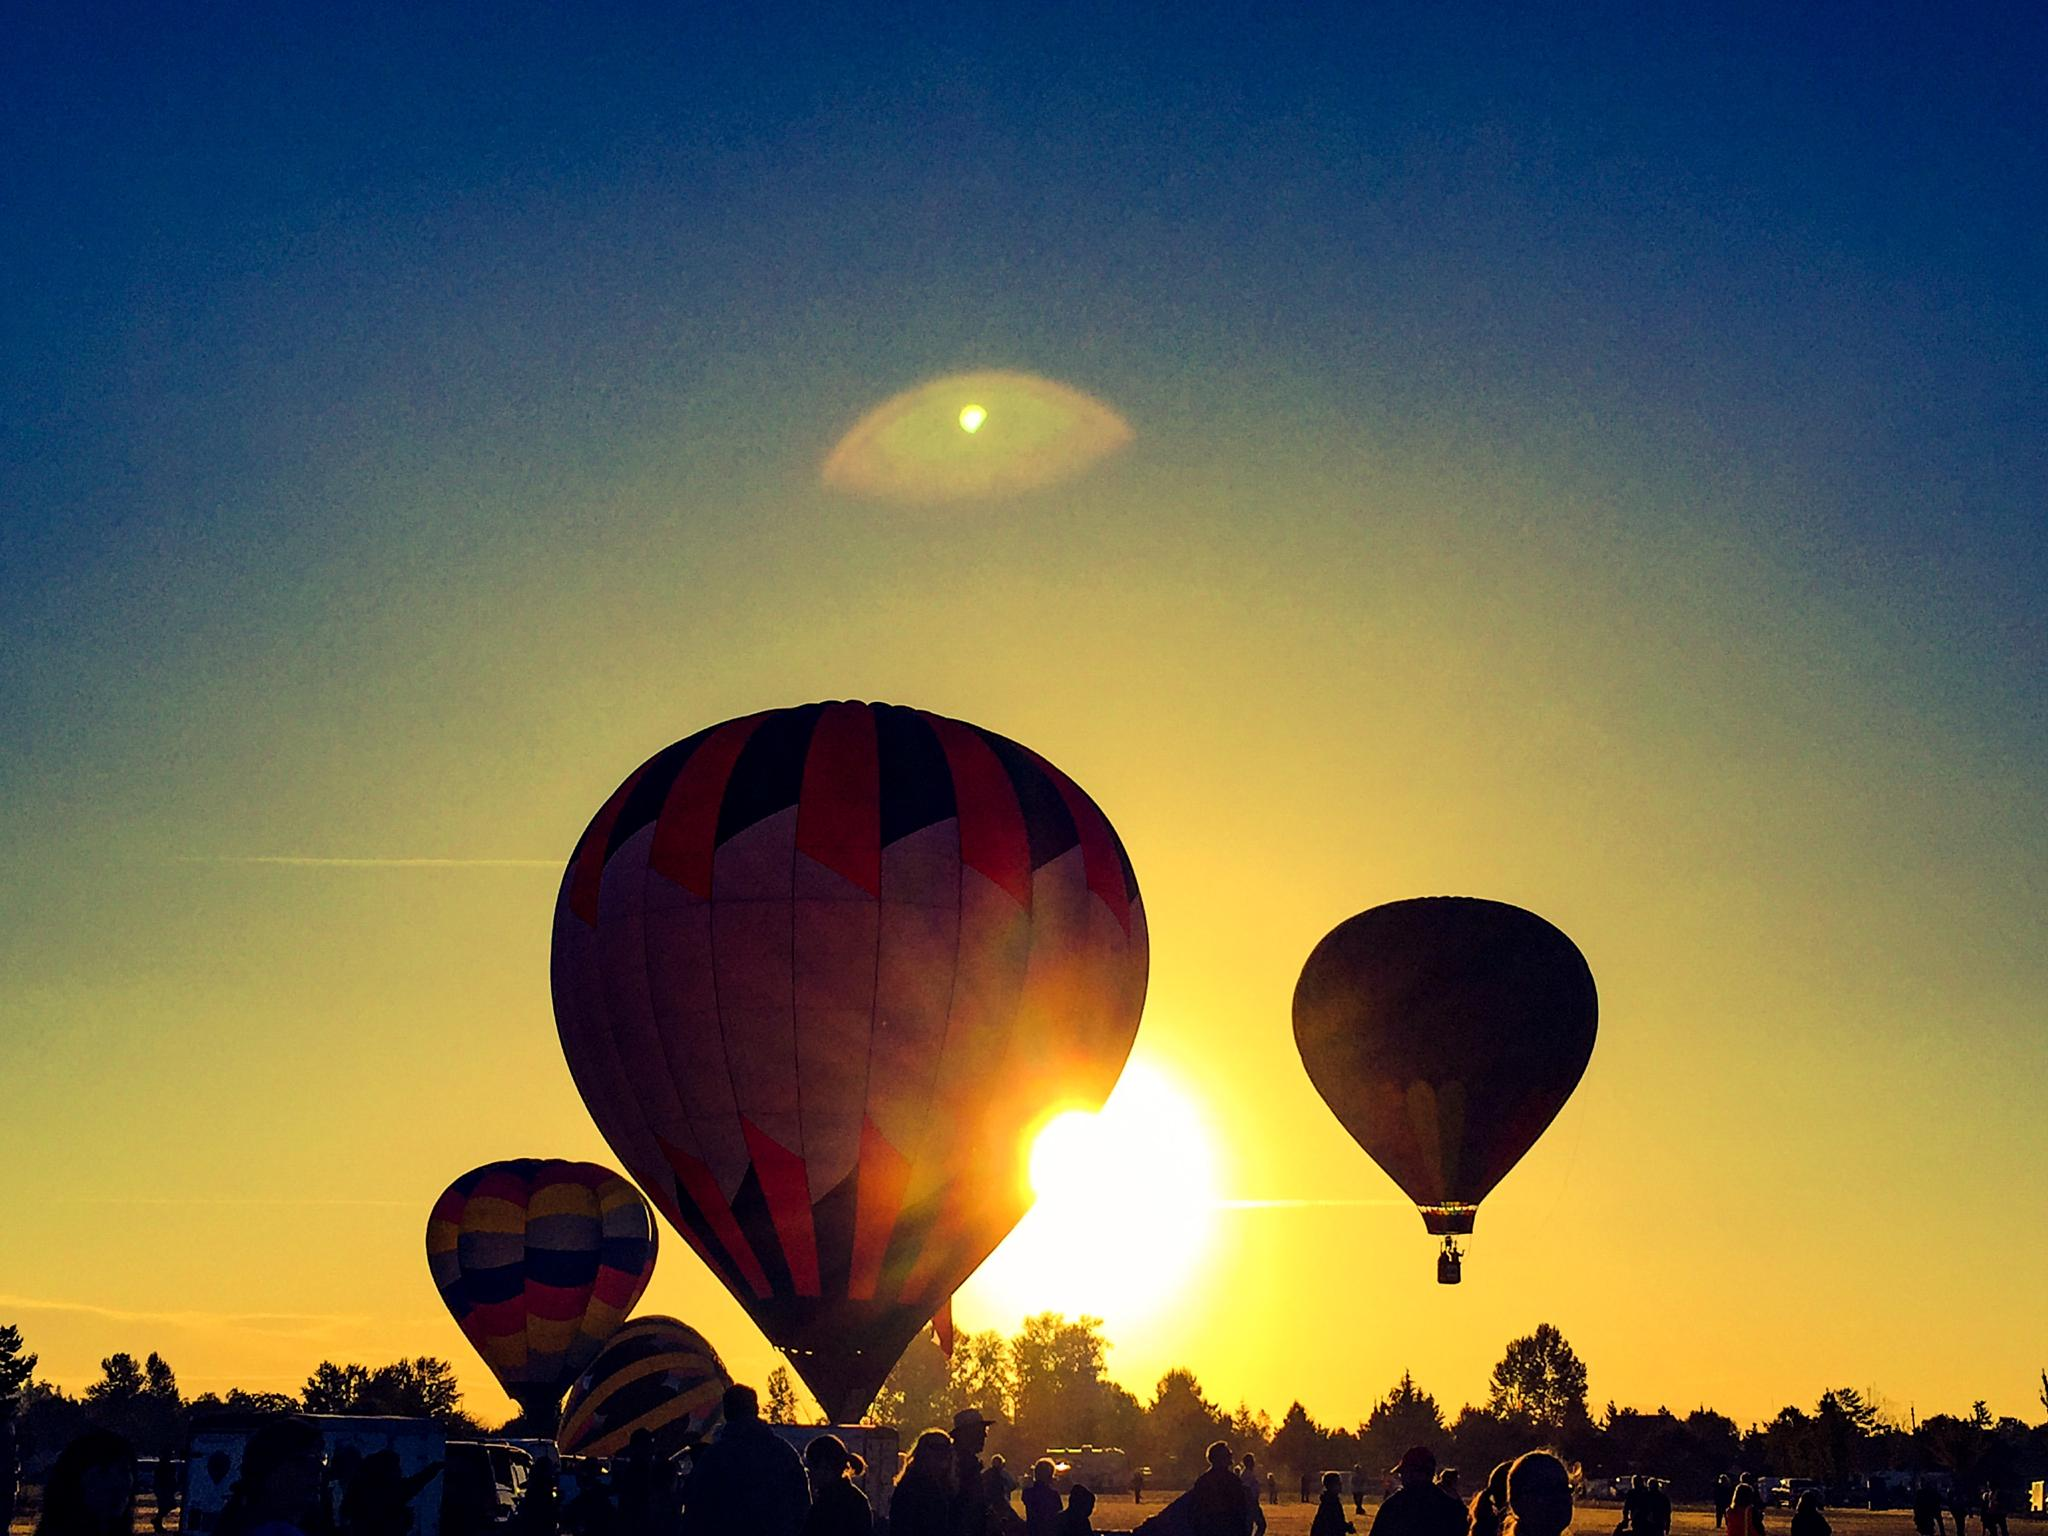 sunrise with the balloons by peyton0104